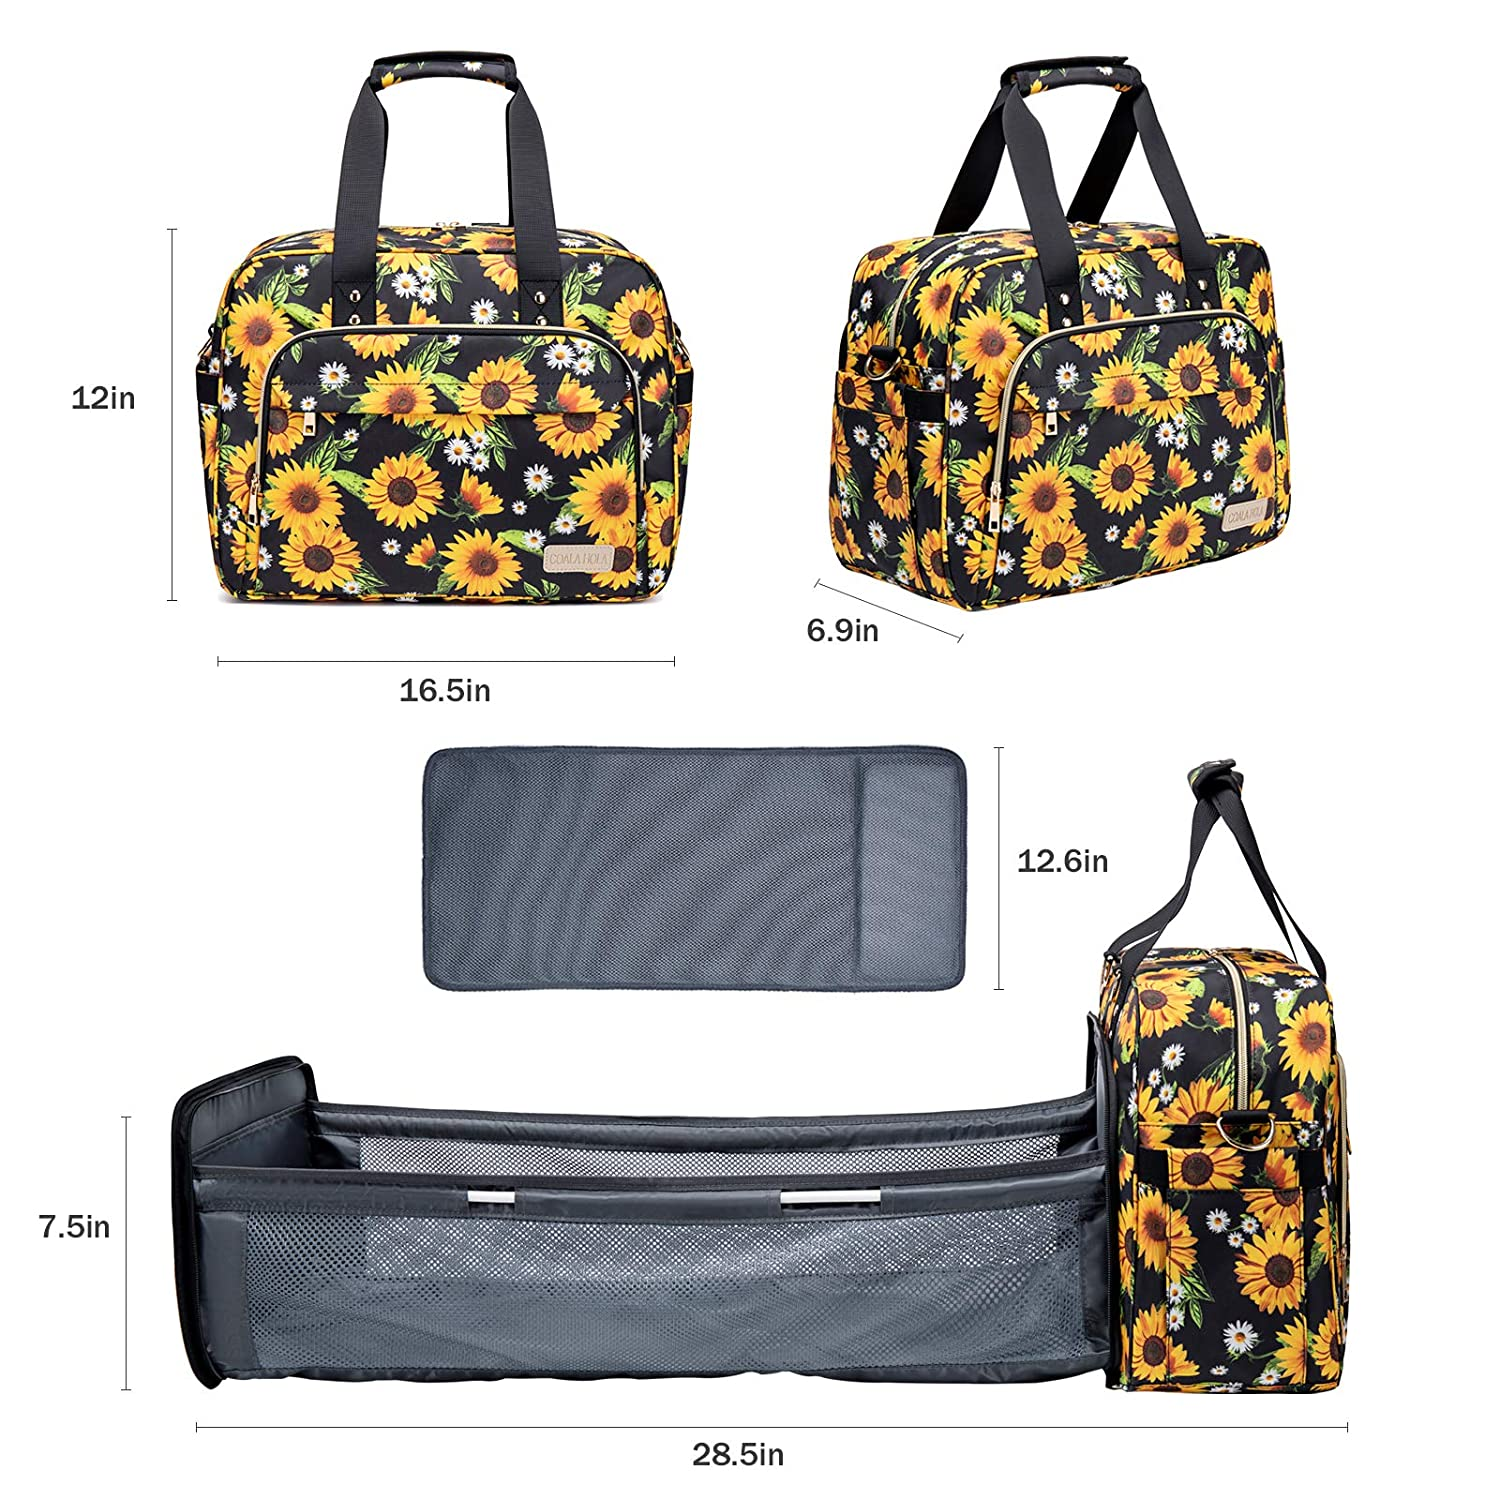 4 in 1 Diaper Bag Backpack Baby Travel Organizer Bag with Foldable Baby Bassinet Bed, Backpack Bag with Changing Station Pad, 4 Ways Carrying Portable Mommy Bag, Sunflowers